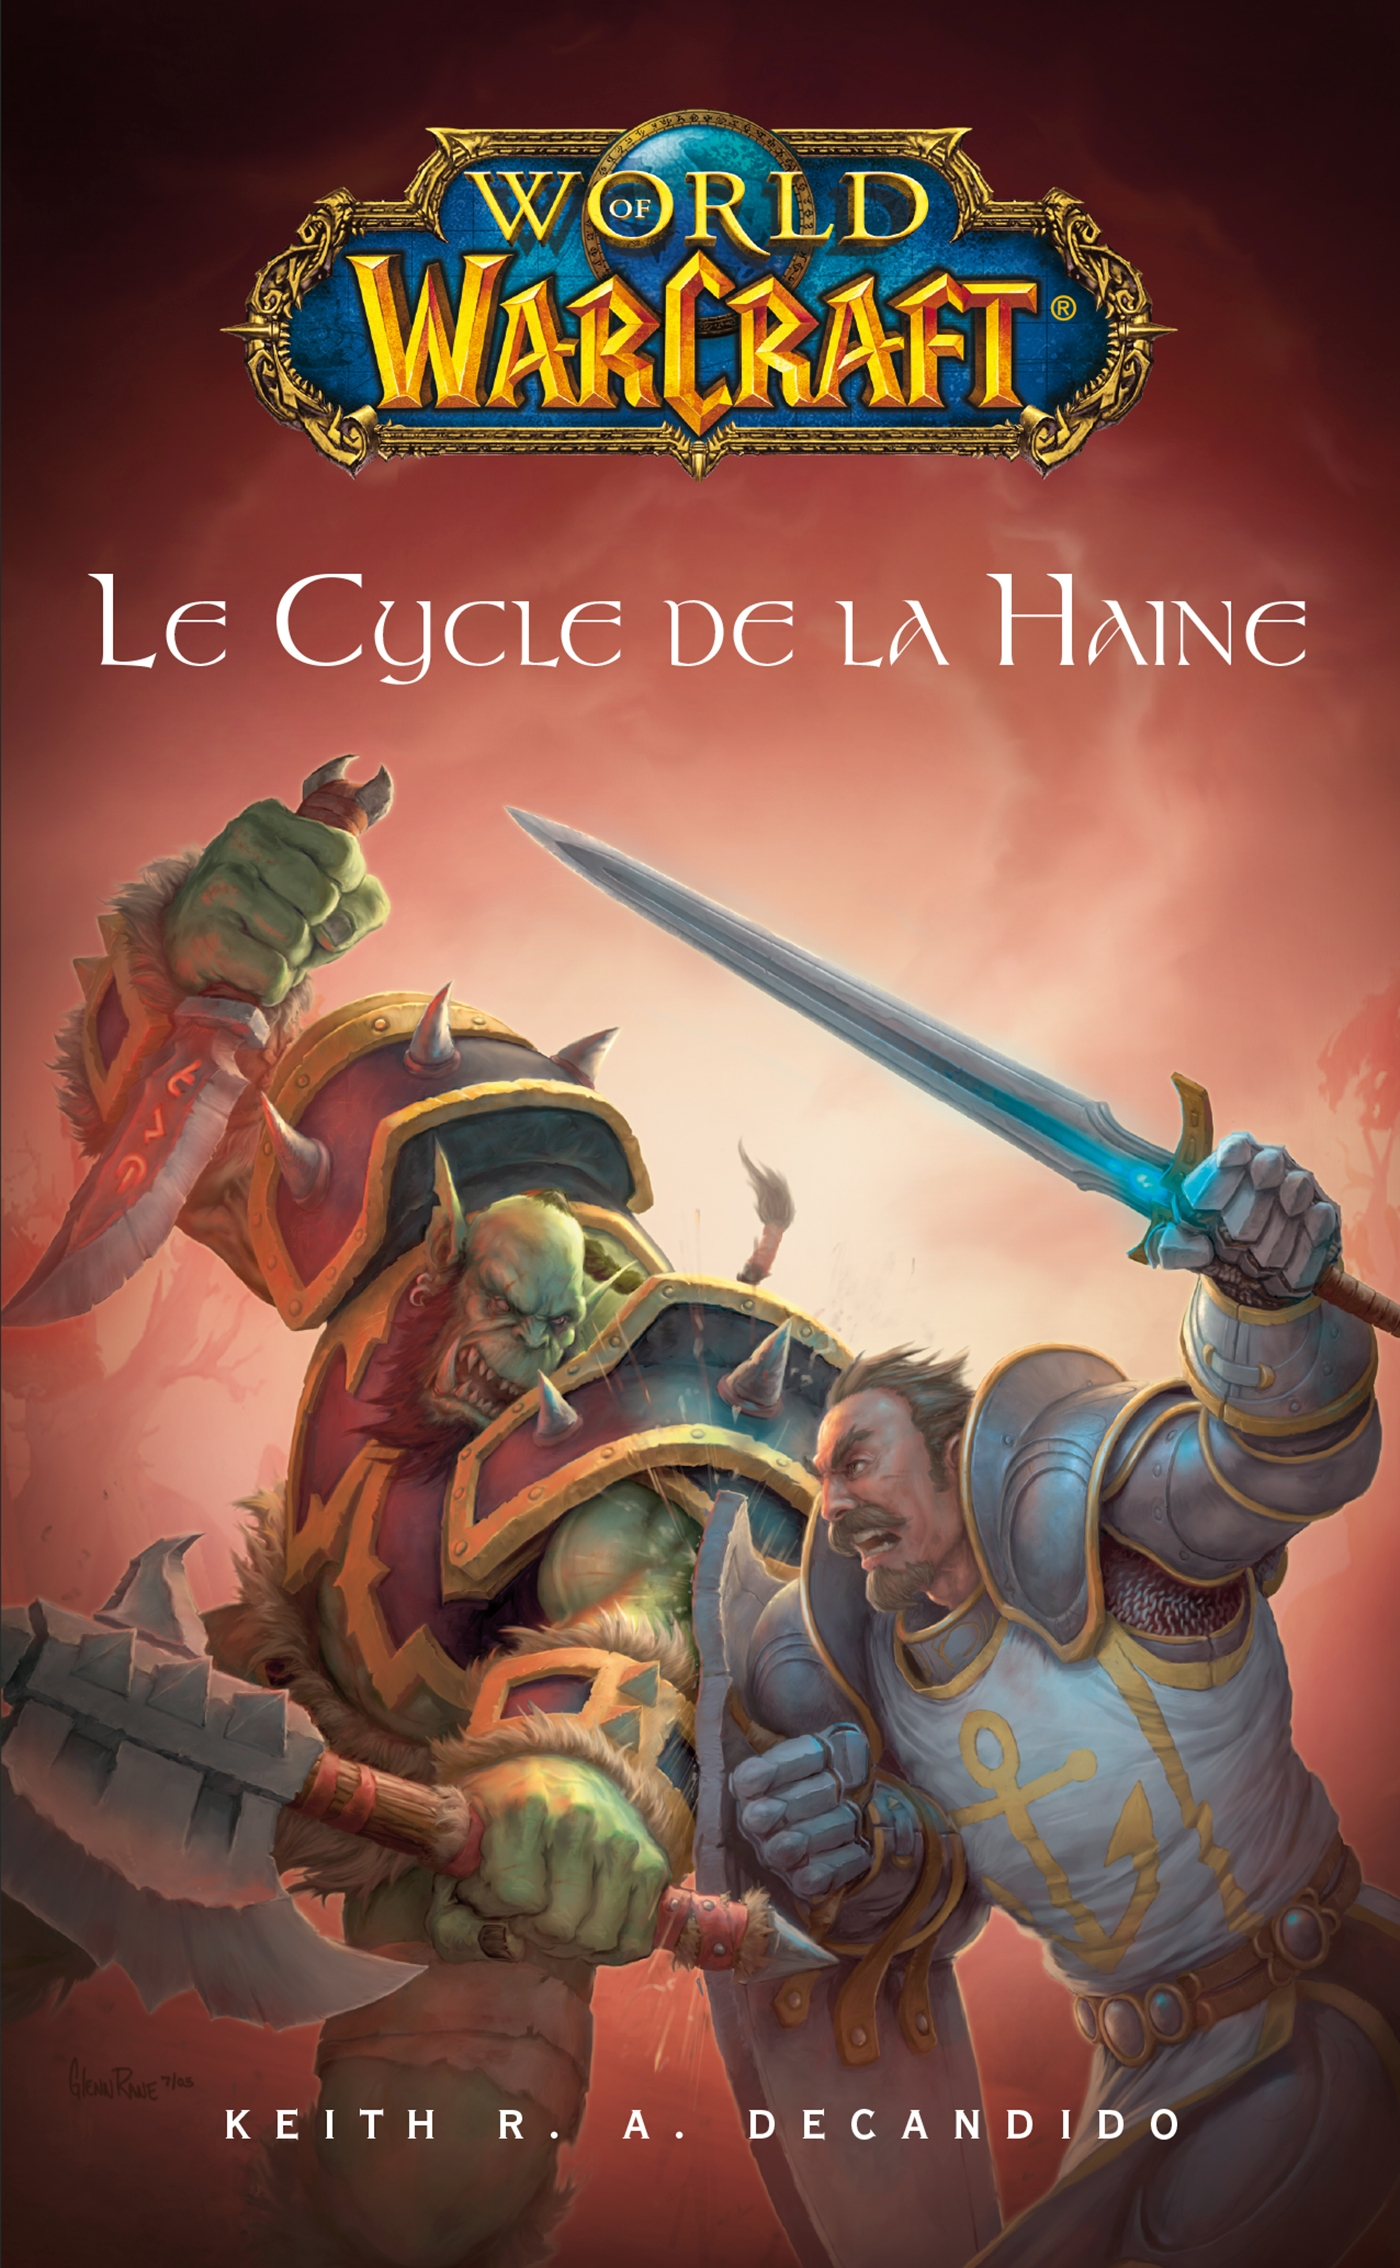 World of Warcraft - Le cycle de la haine